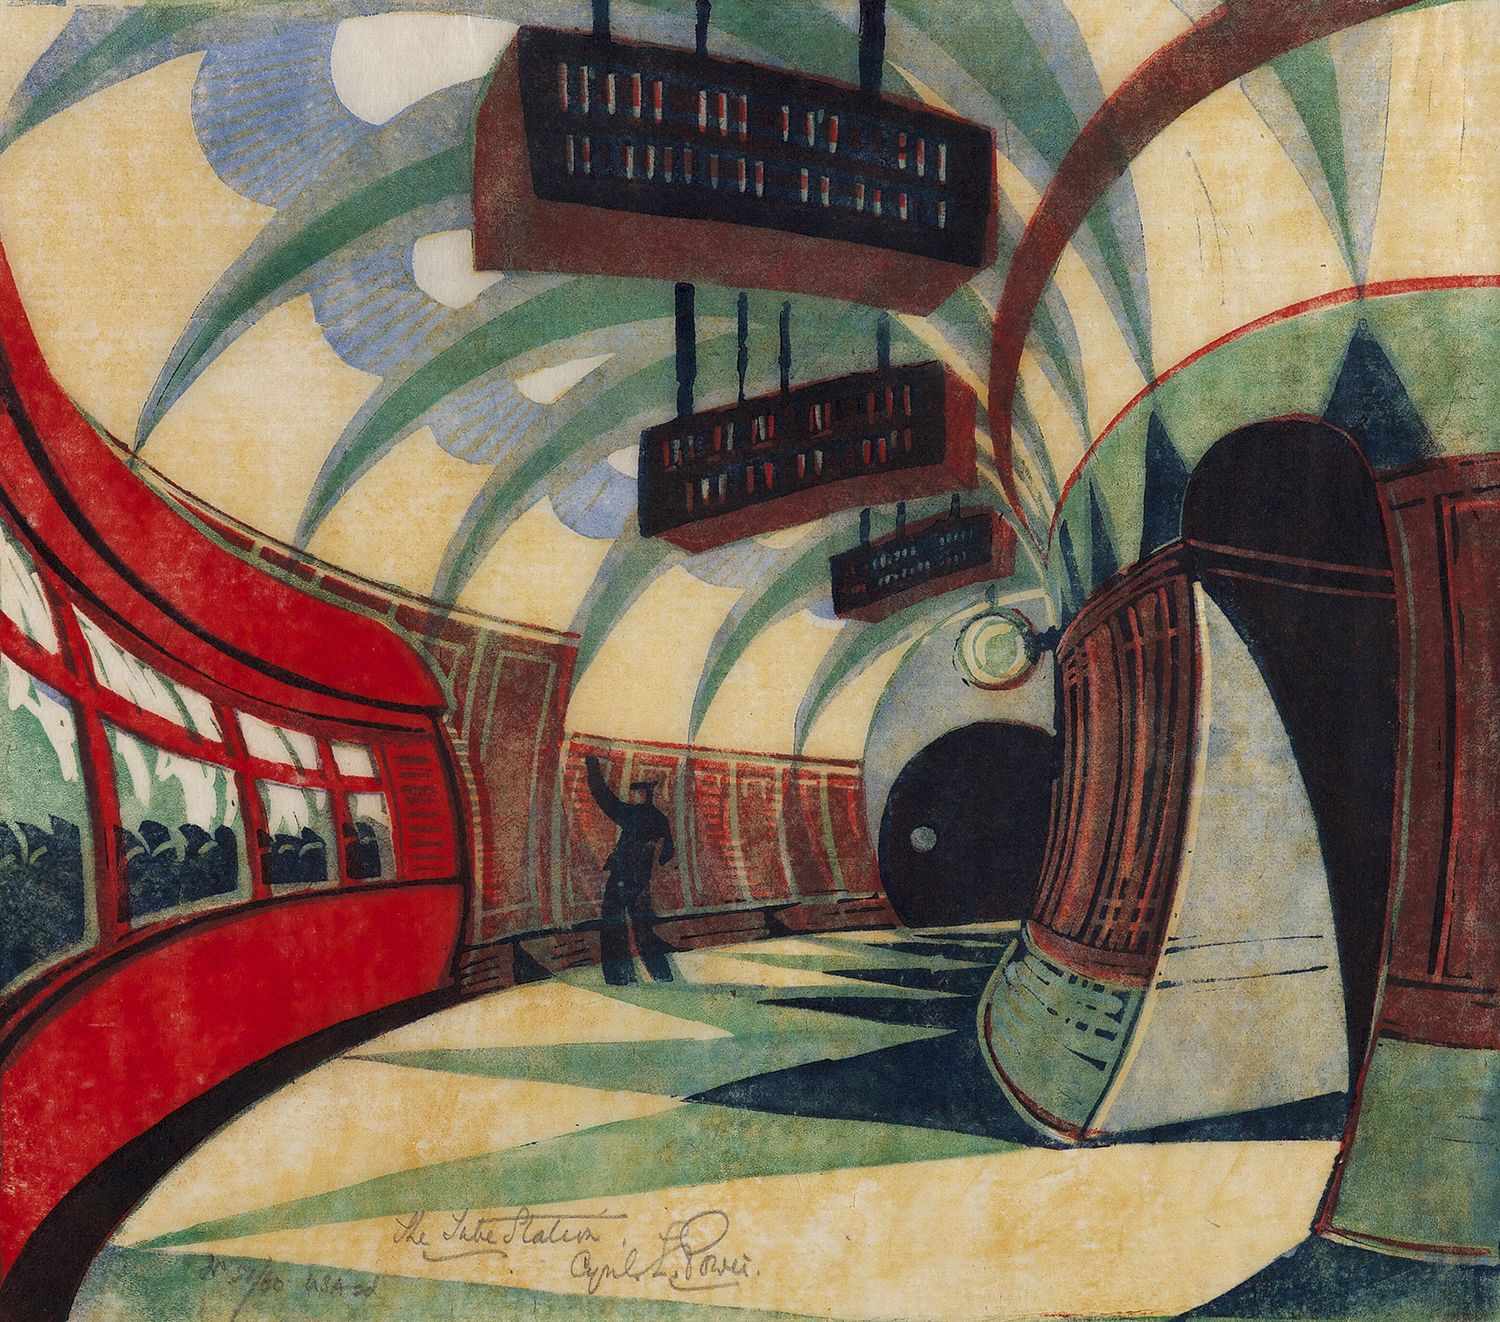 Cyril Power, The Tube Station, c. 1932.